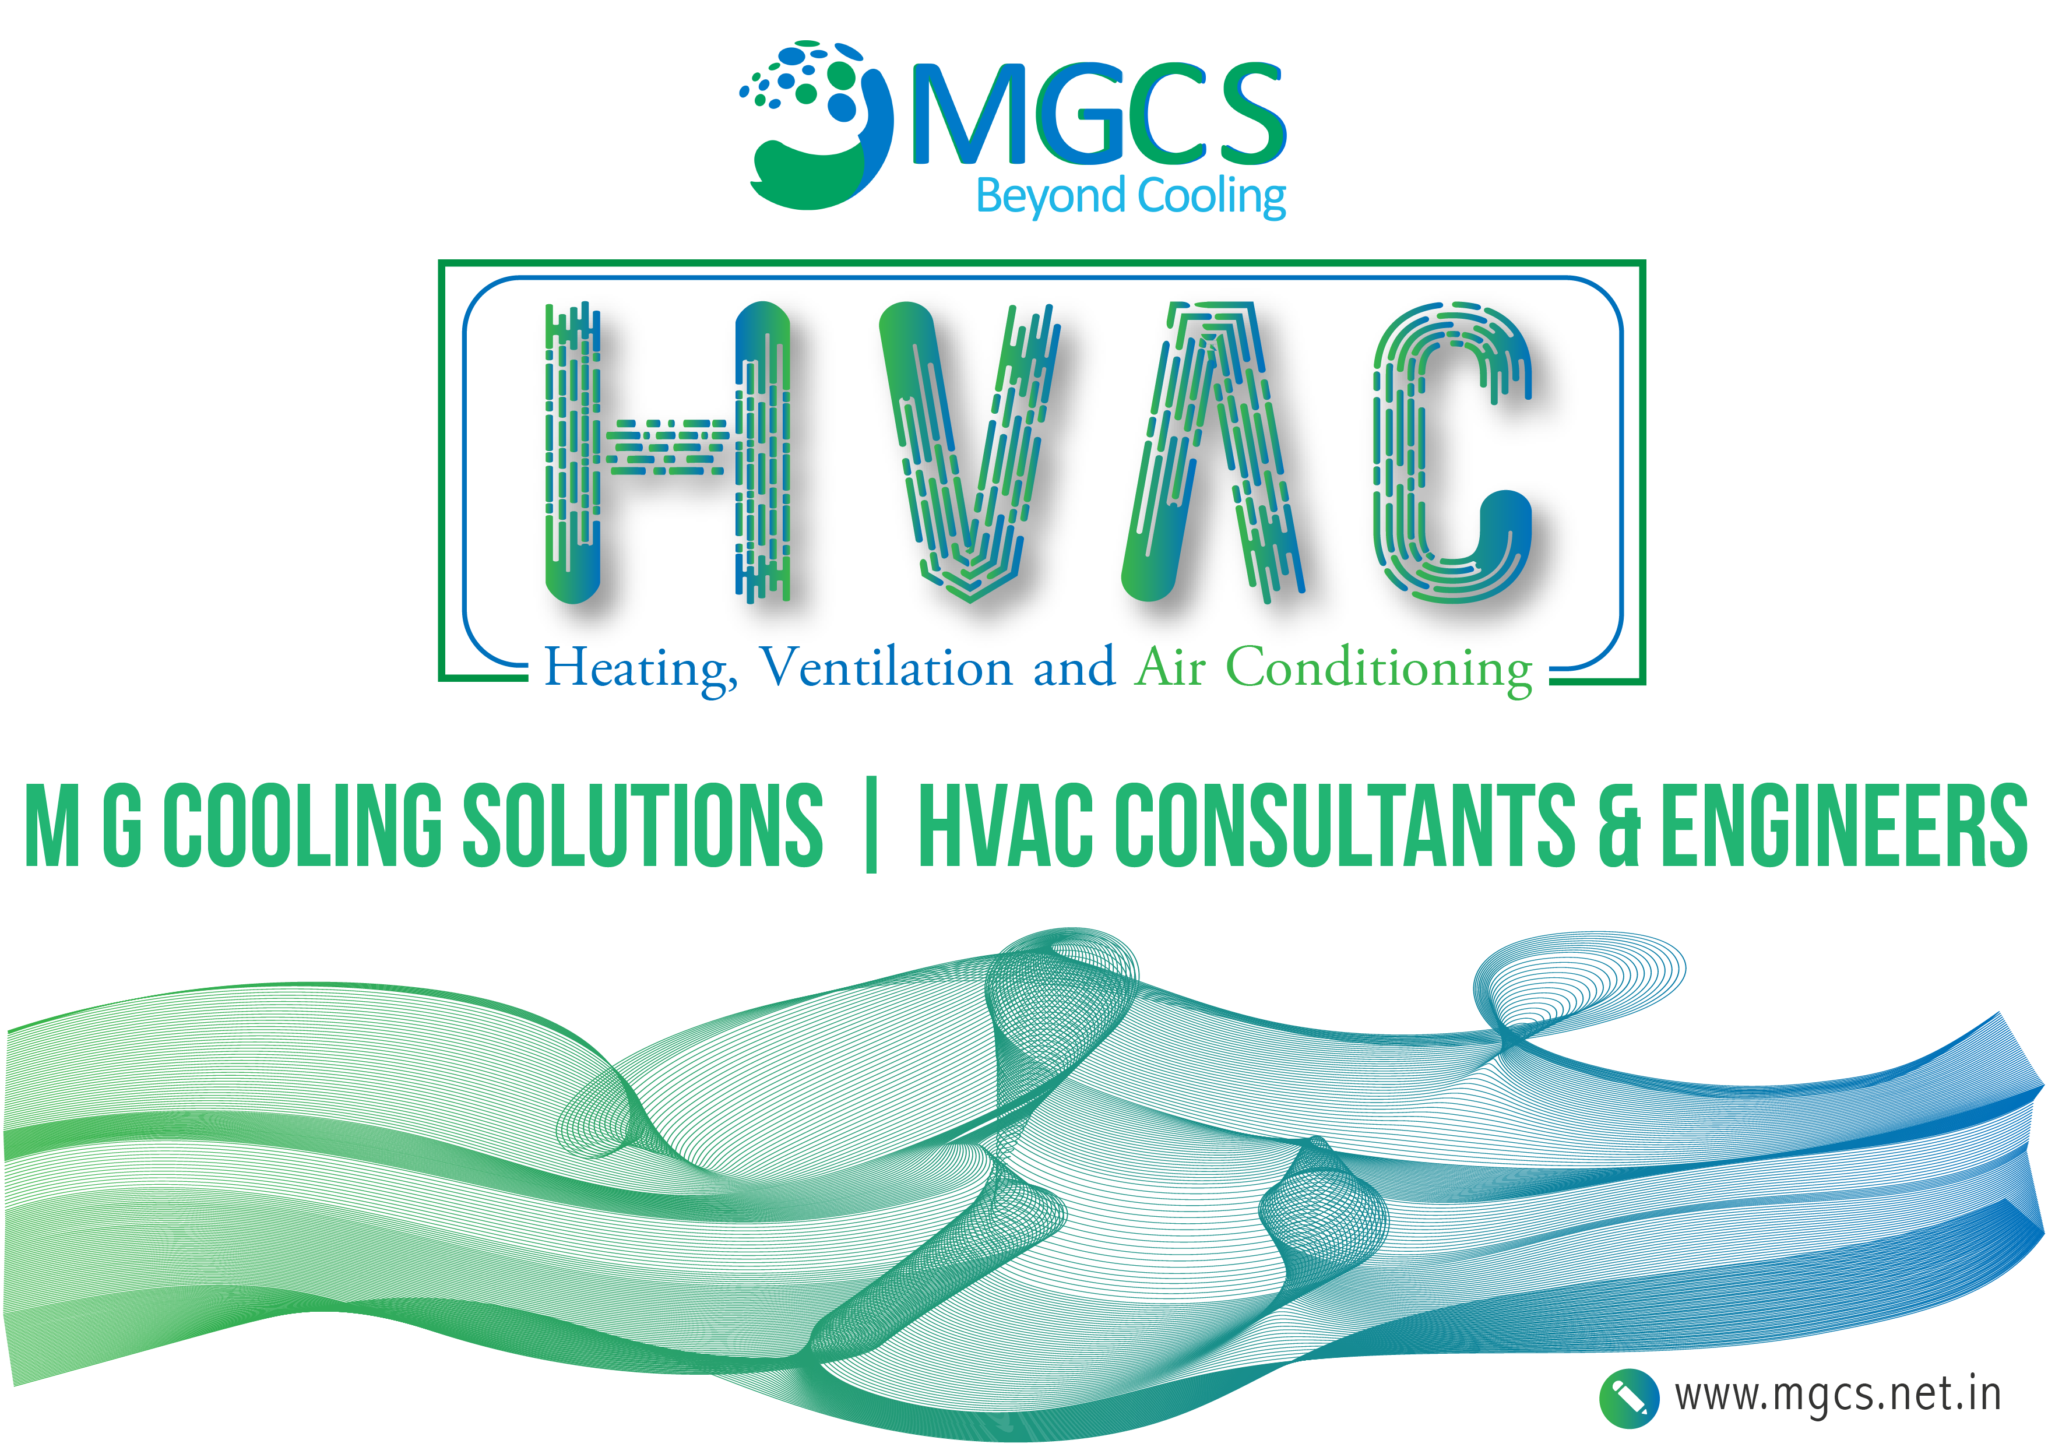 How HVAC Systems can help in Improving Air Quality inside any building?